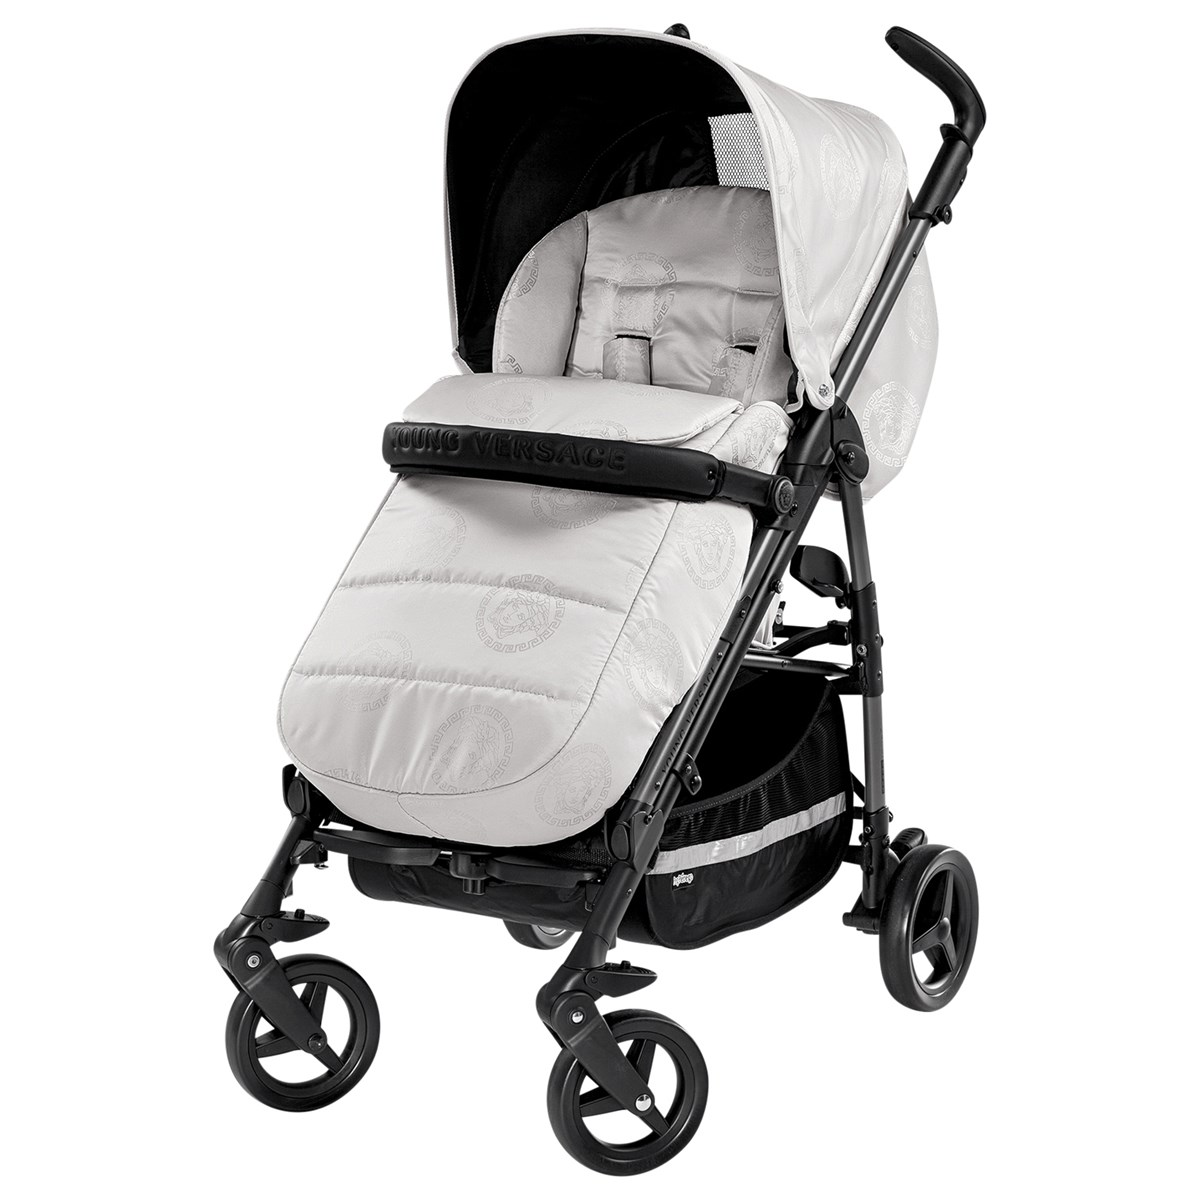 Young Versace Baby White Stroller And Travel Set Versace Jacquard Medusa Stroller Pearl Grey Babyshop